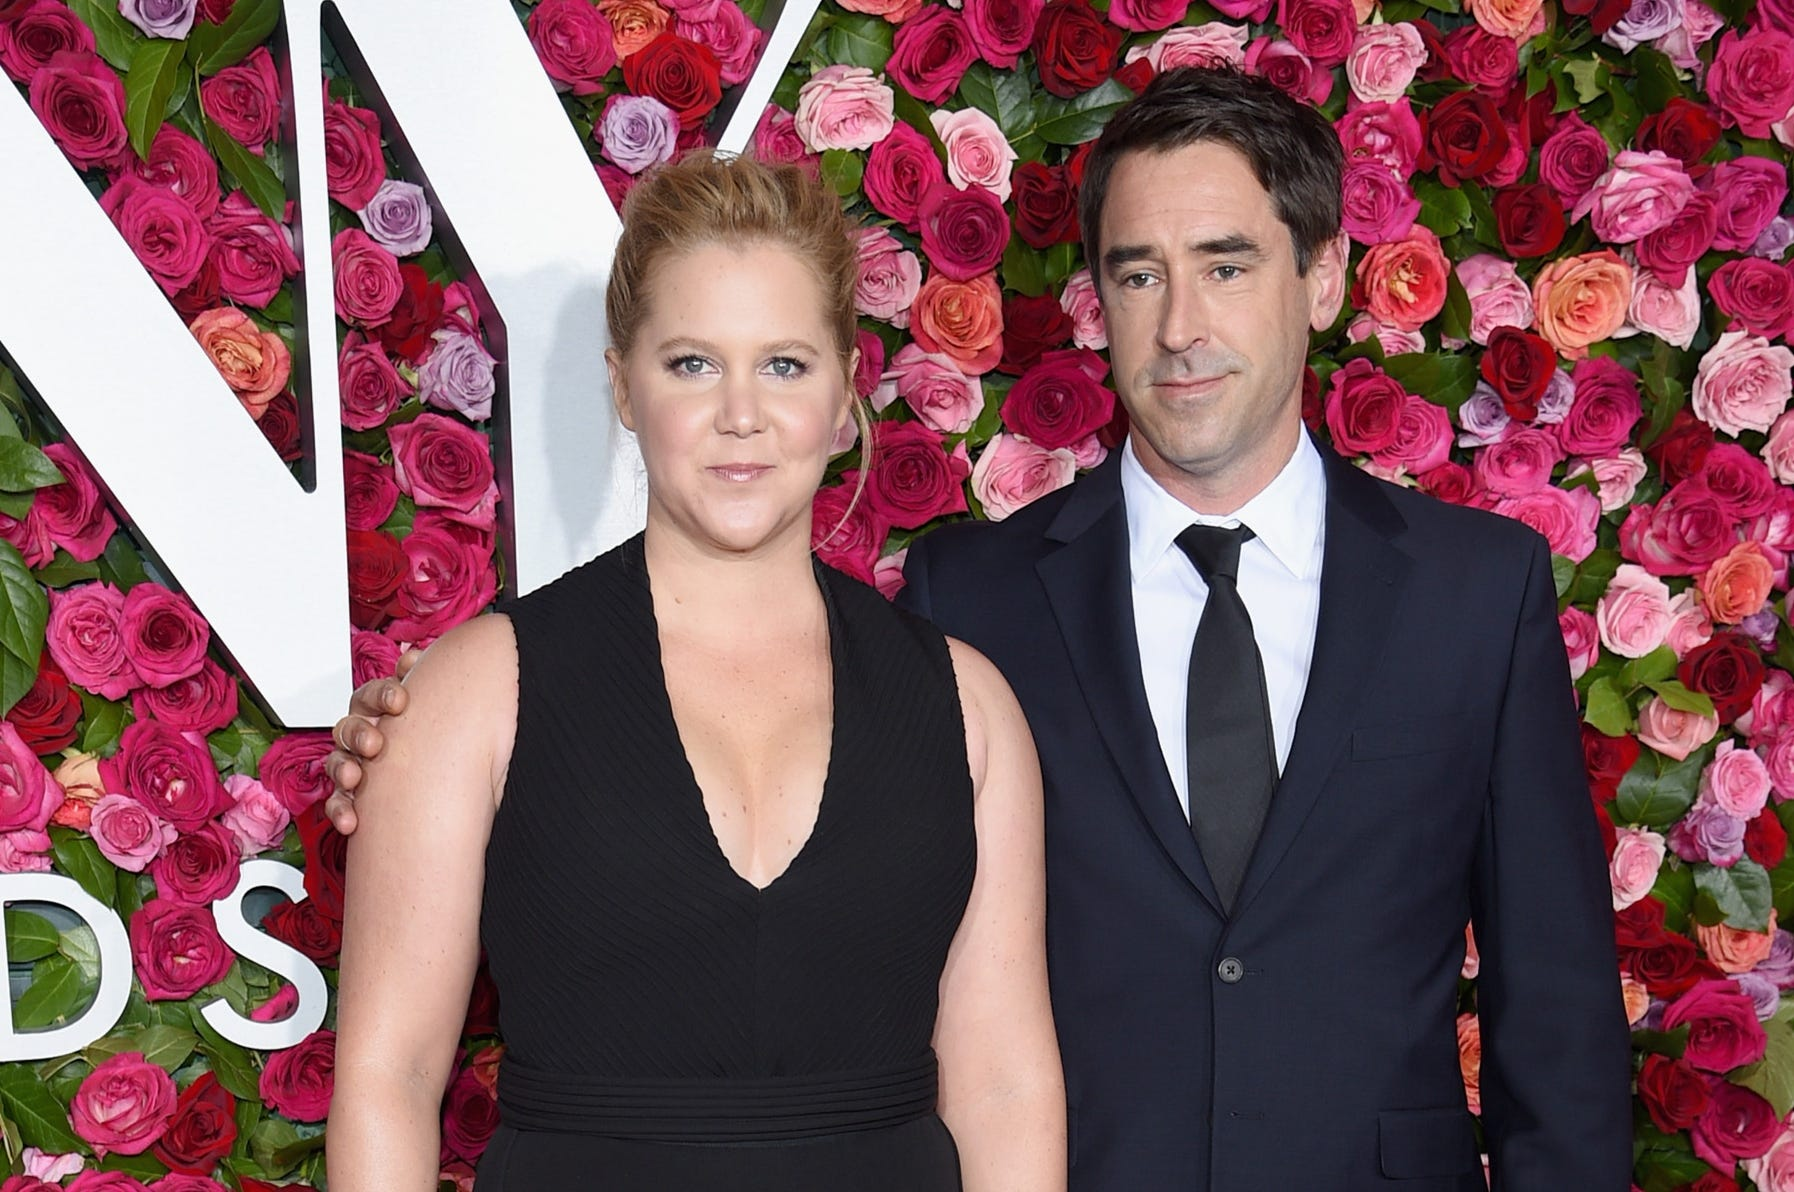 Amy Schumer Gives Birth To Baby Boy Gene Within Hours Of Meghan Markle